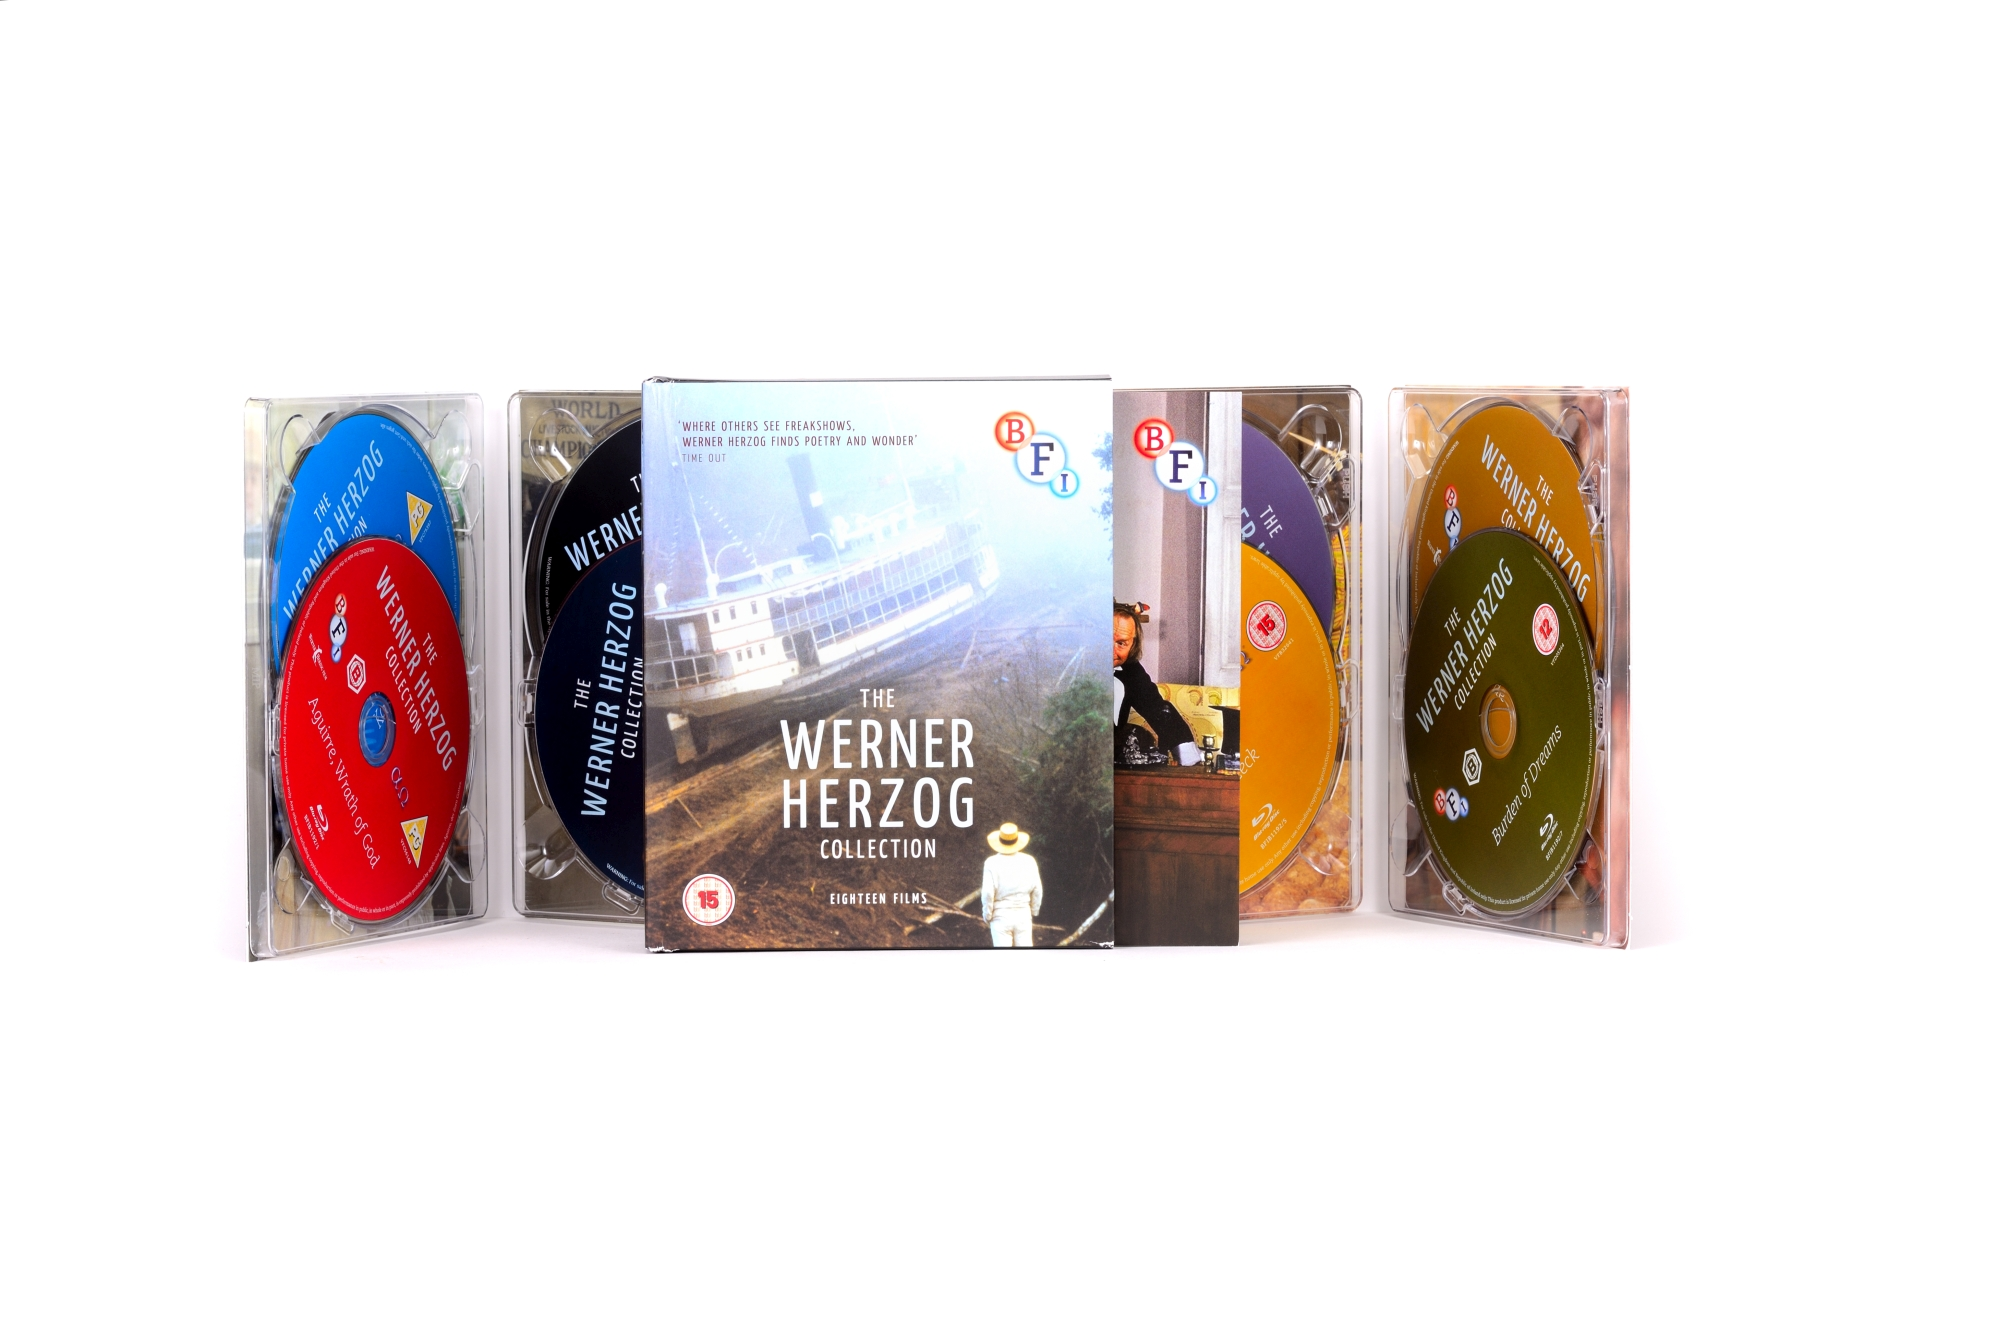 Buy The Werner Herzog Collection (Blu-ray)